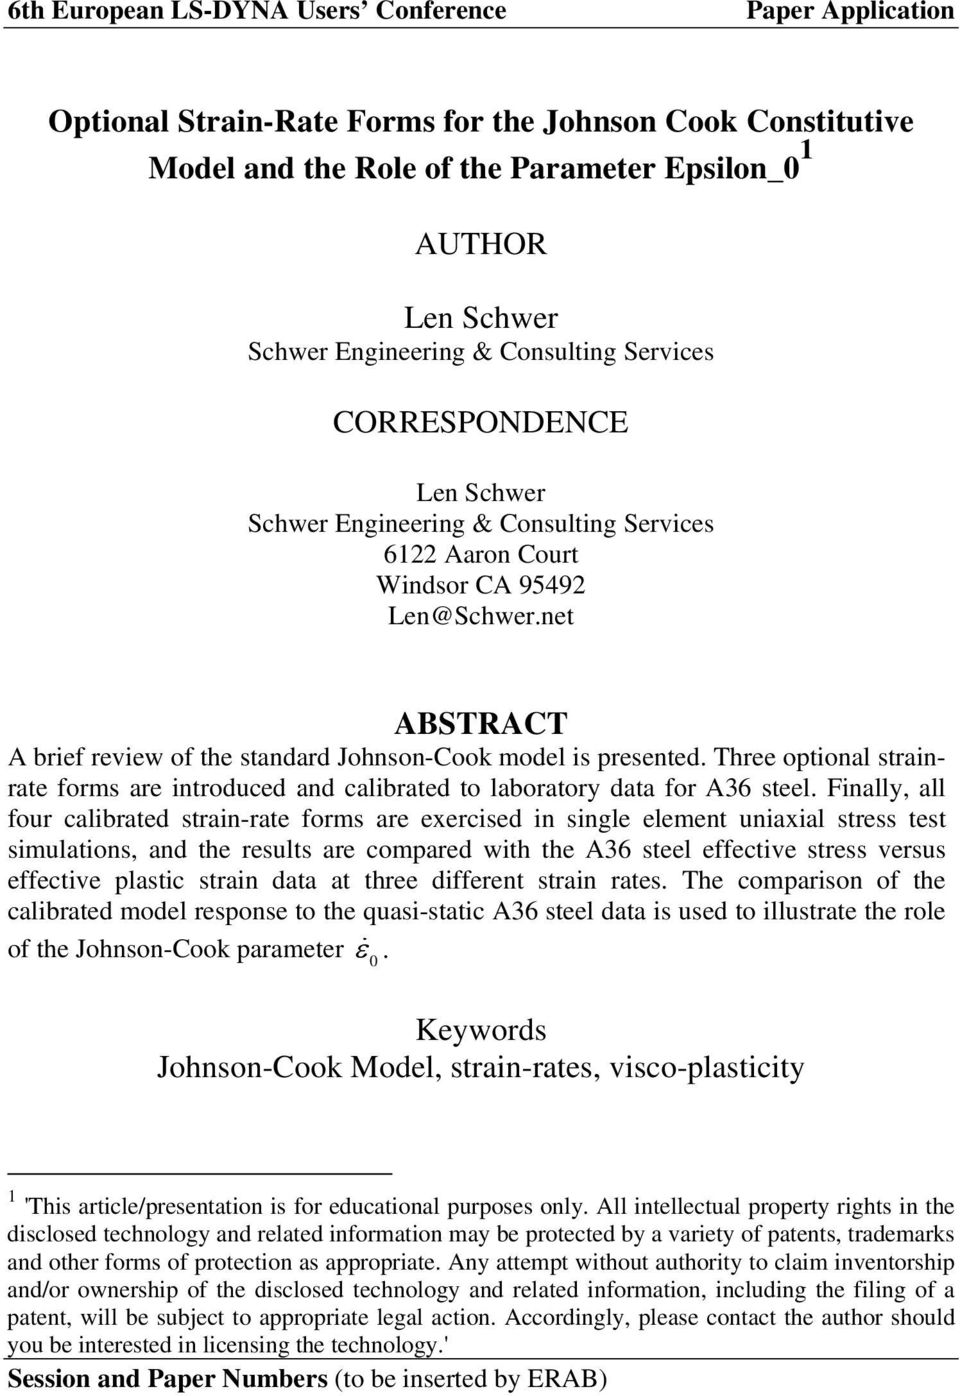 Optional Strain-Rate Forms for the Johnson Cook Constitutive